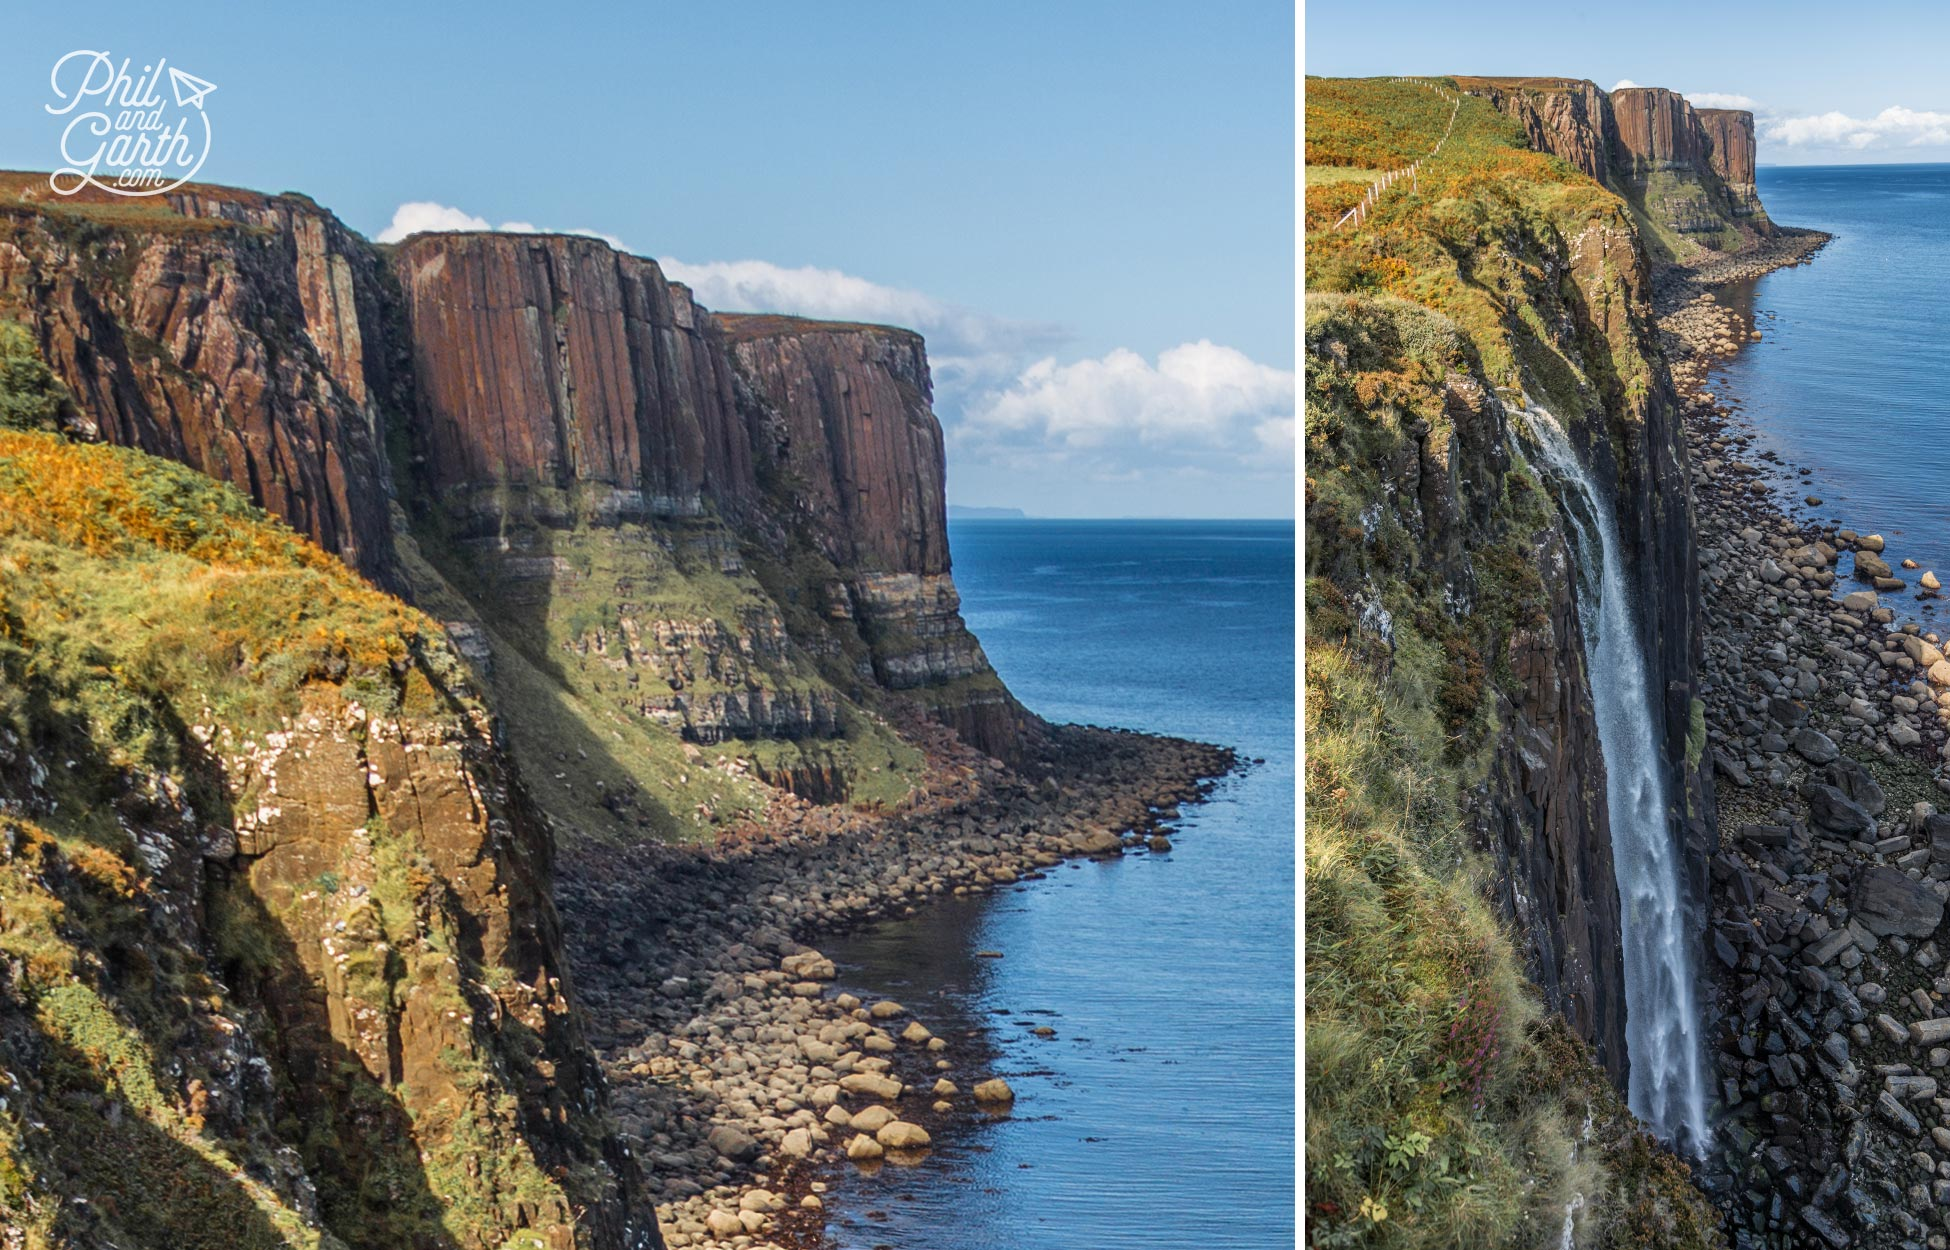 The pleats and pillars of Kilt Rock and Mealt Falls